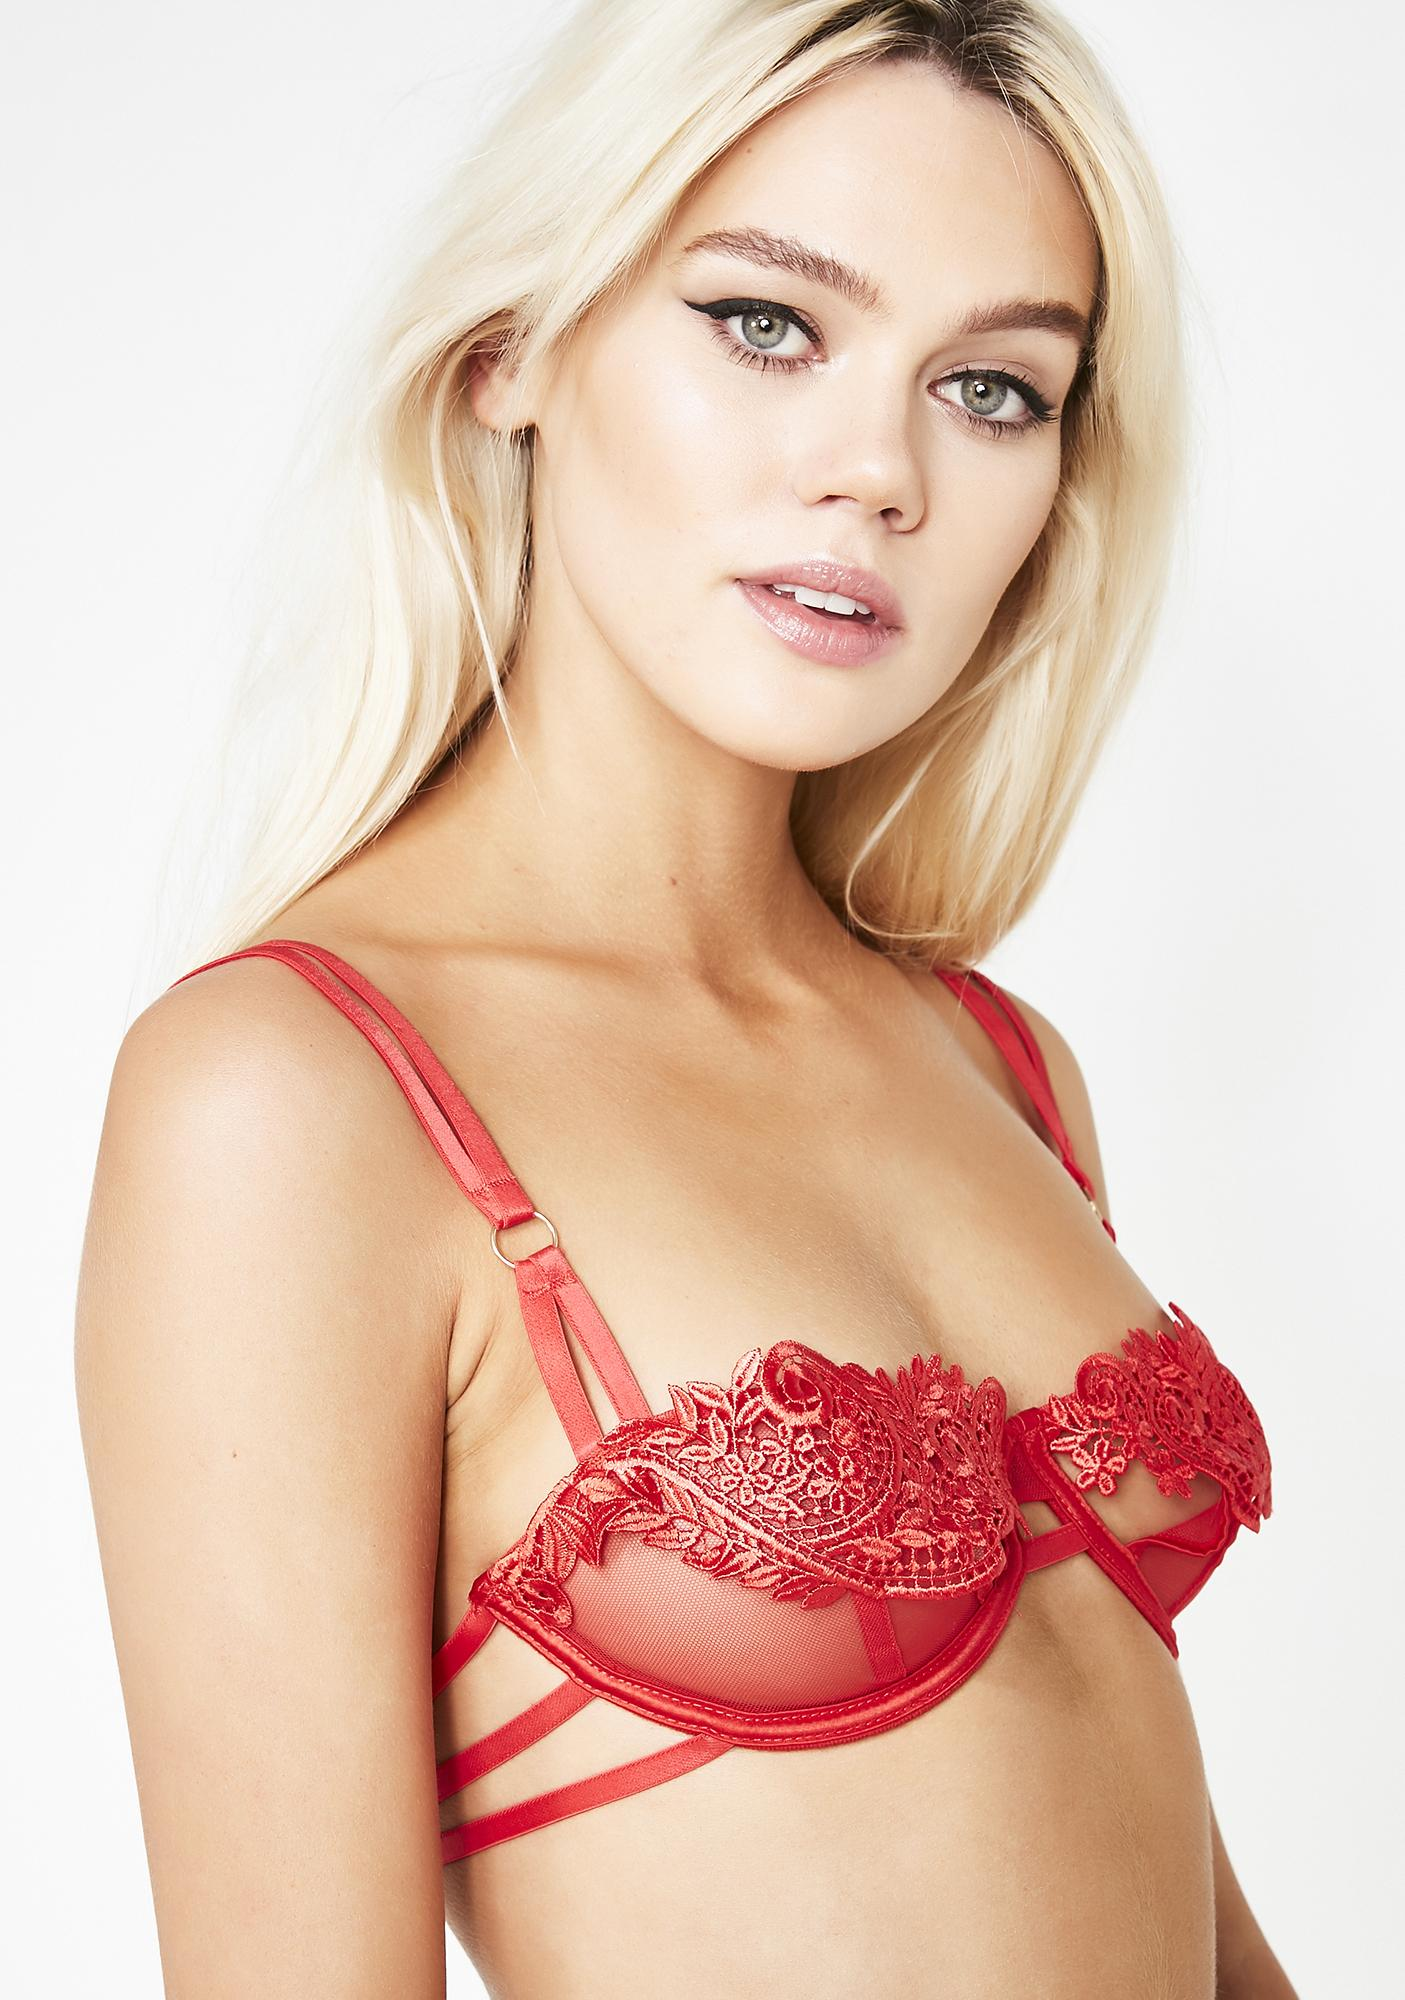 Blue Bella Cherry Julienne Bra